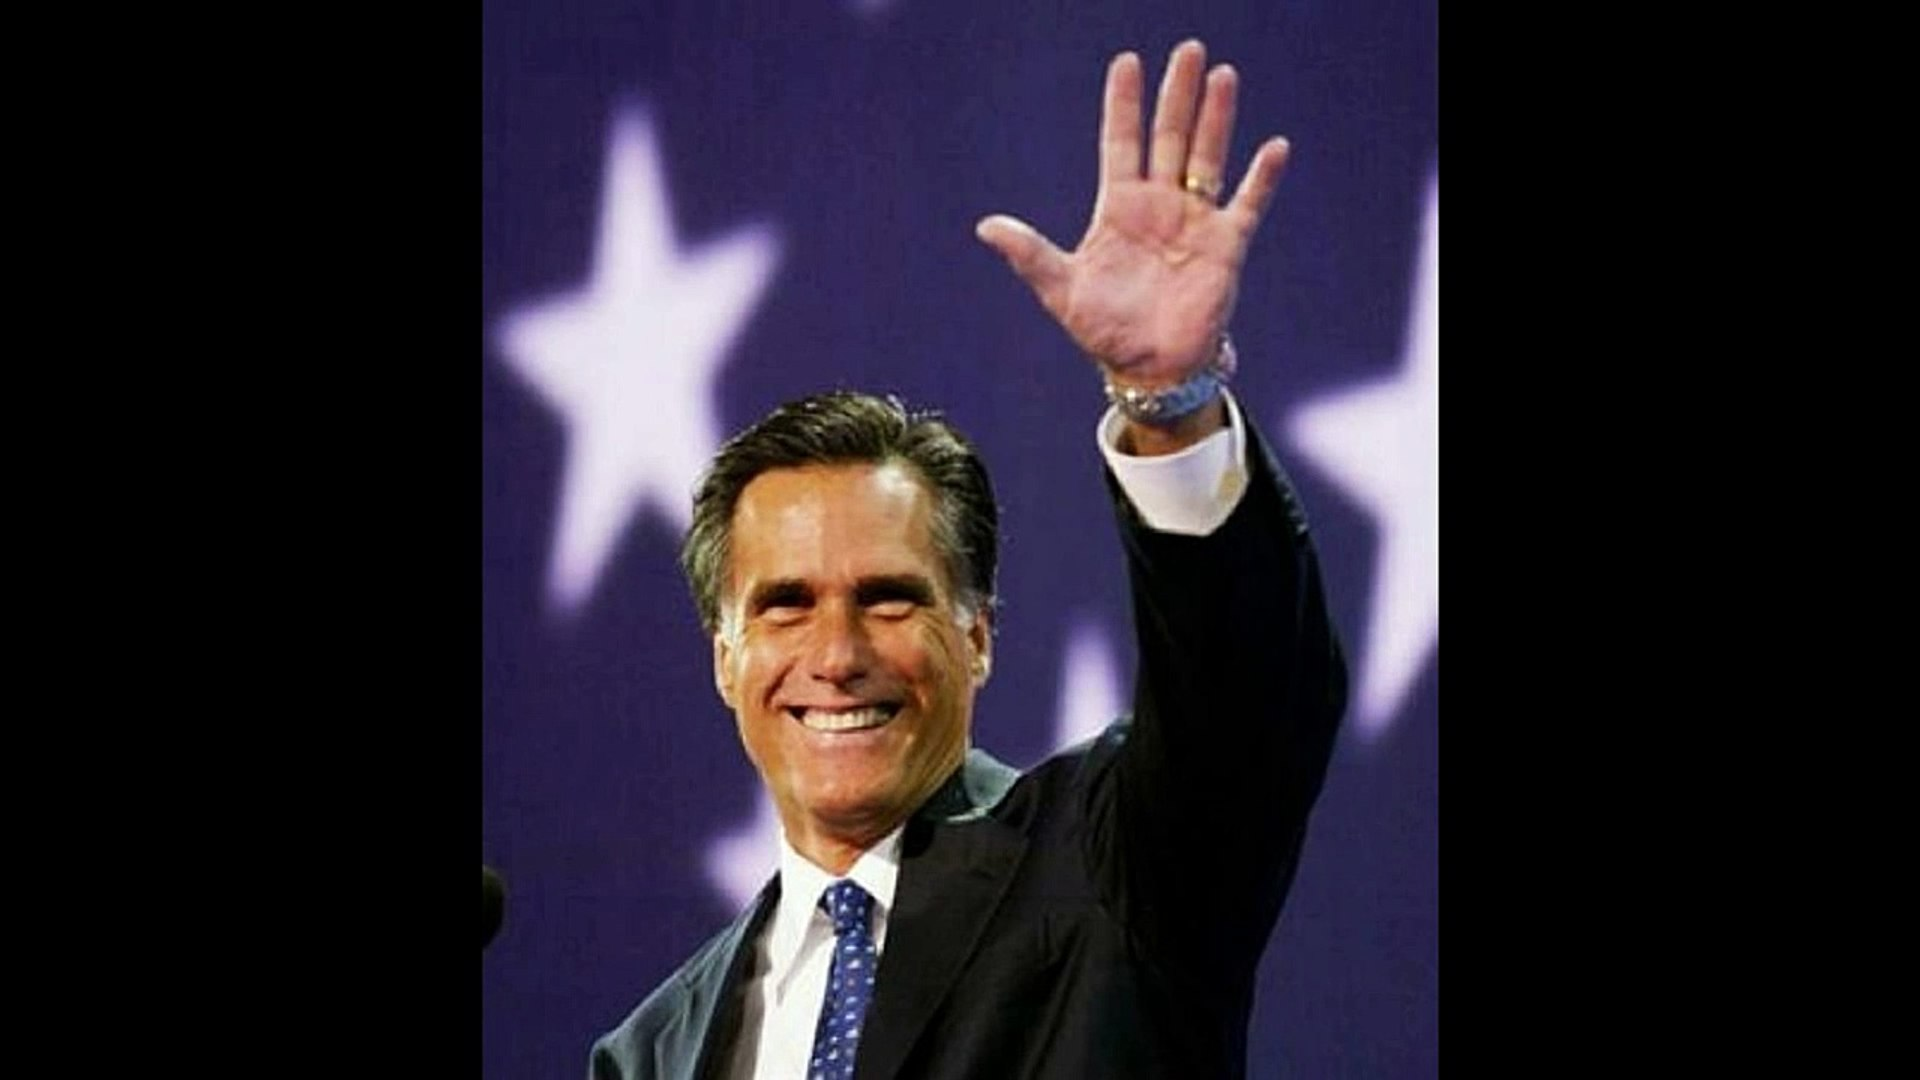 Mitt Romney - Now You're A Man. Pack Your Bags, It's Time for Boot Camp